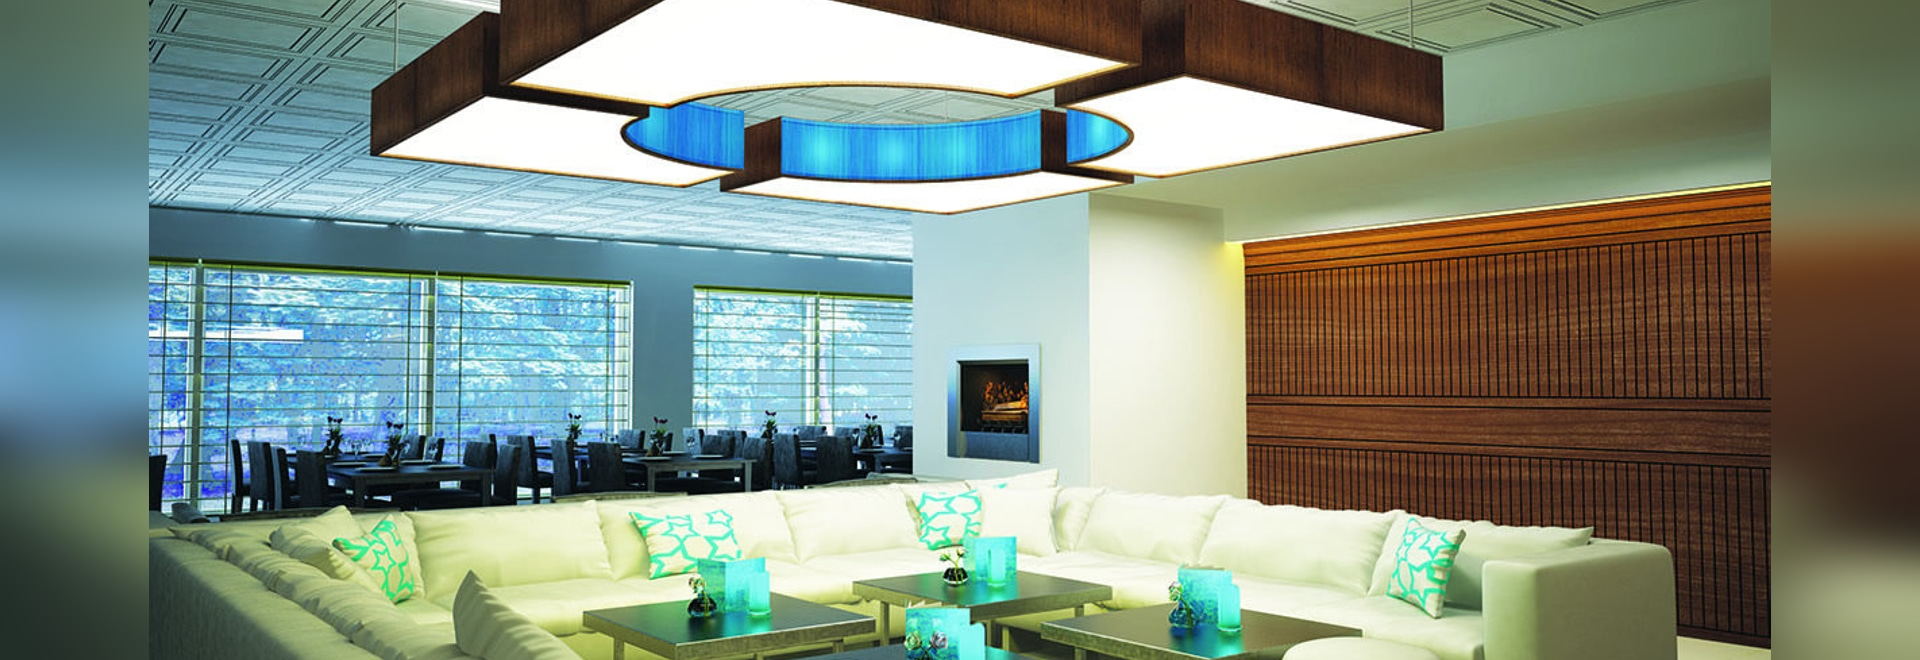 NEW: decorative suspended ceiling by MUR design